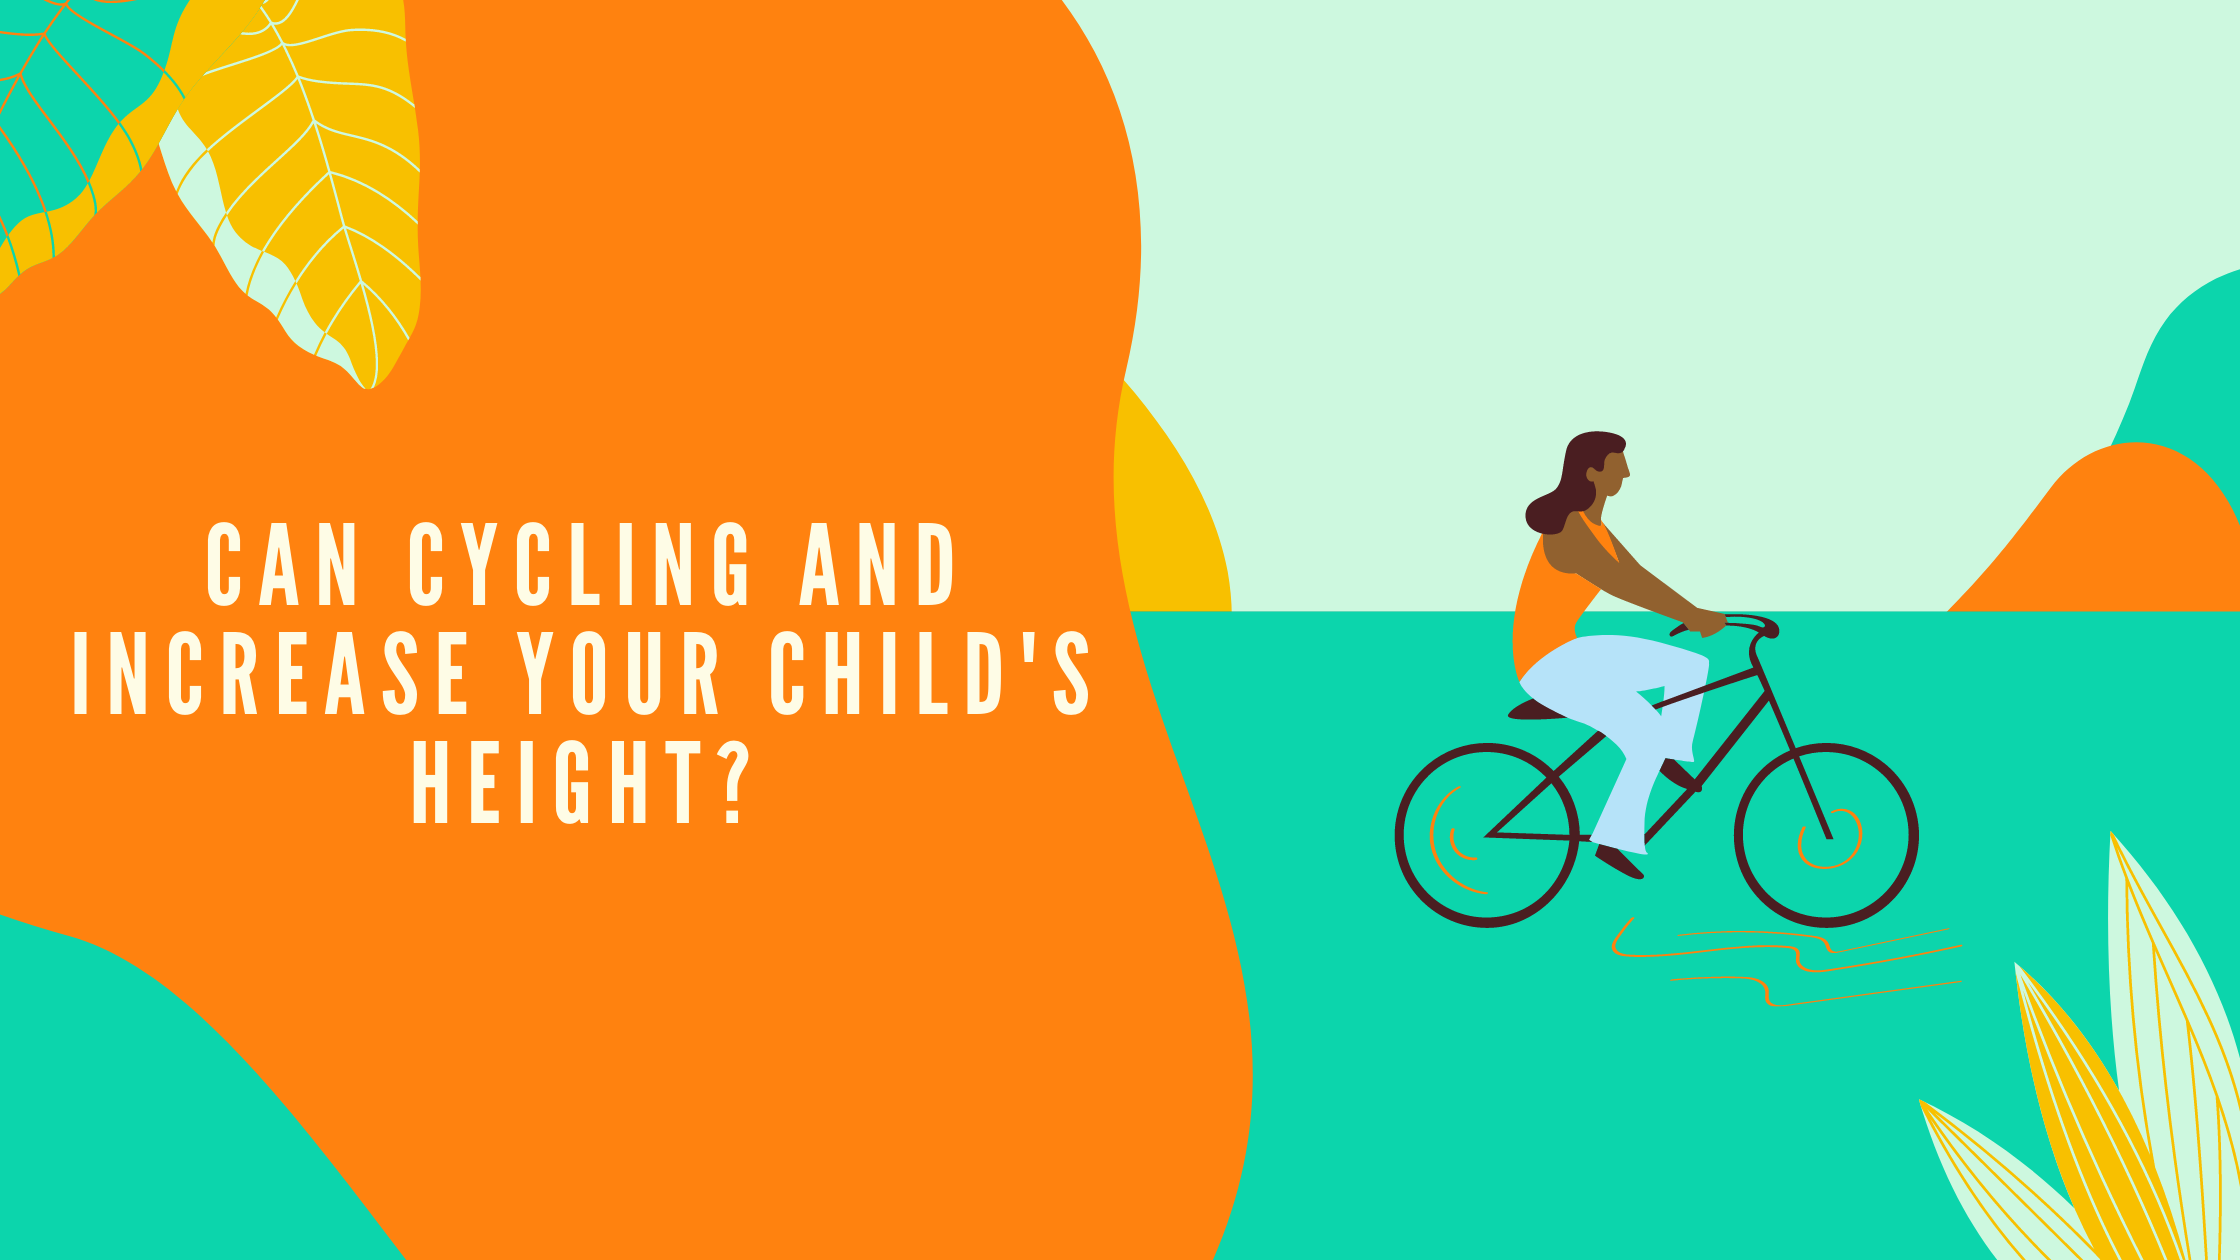 Does cycling or exercise in childhood increase your child's height?